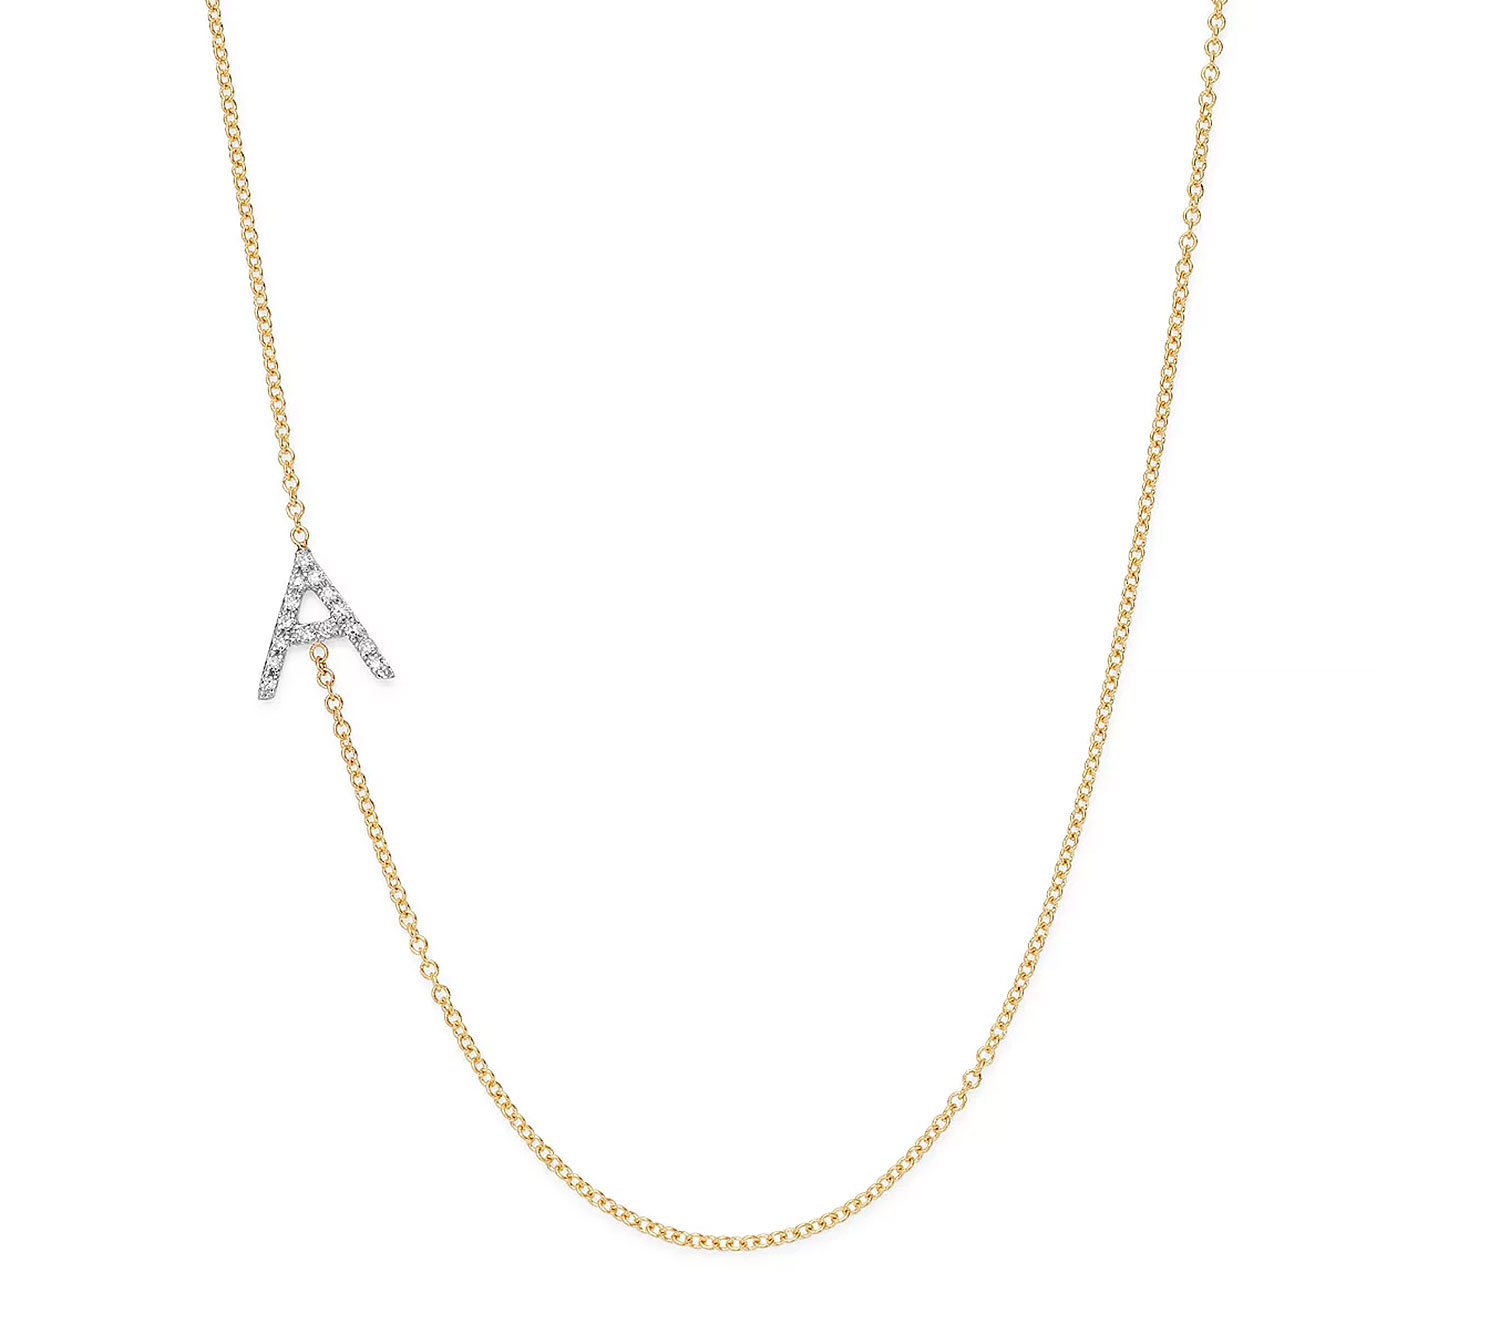 4b9f8839429592 Meghan Markle-Inspired Initial Necklaces Like Her 'A' Archie Charm